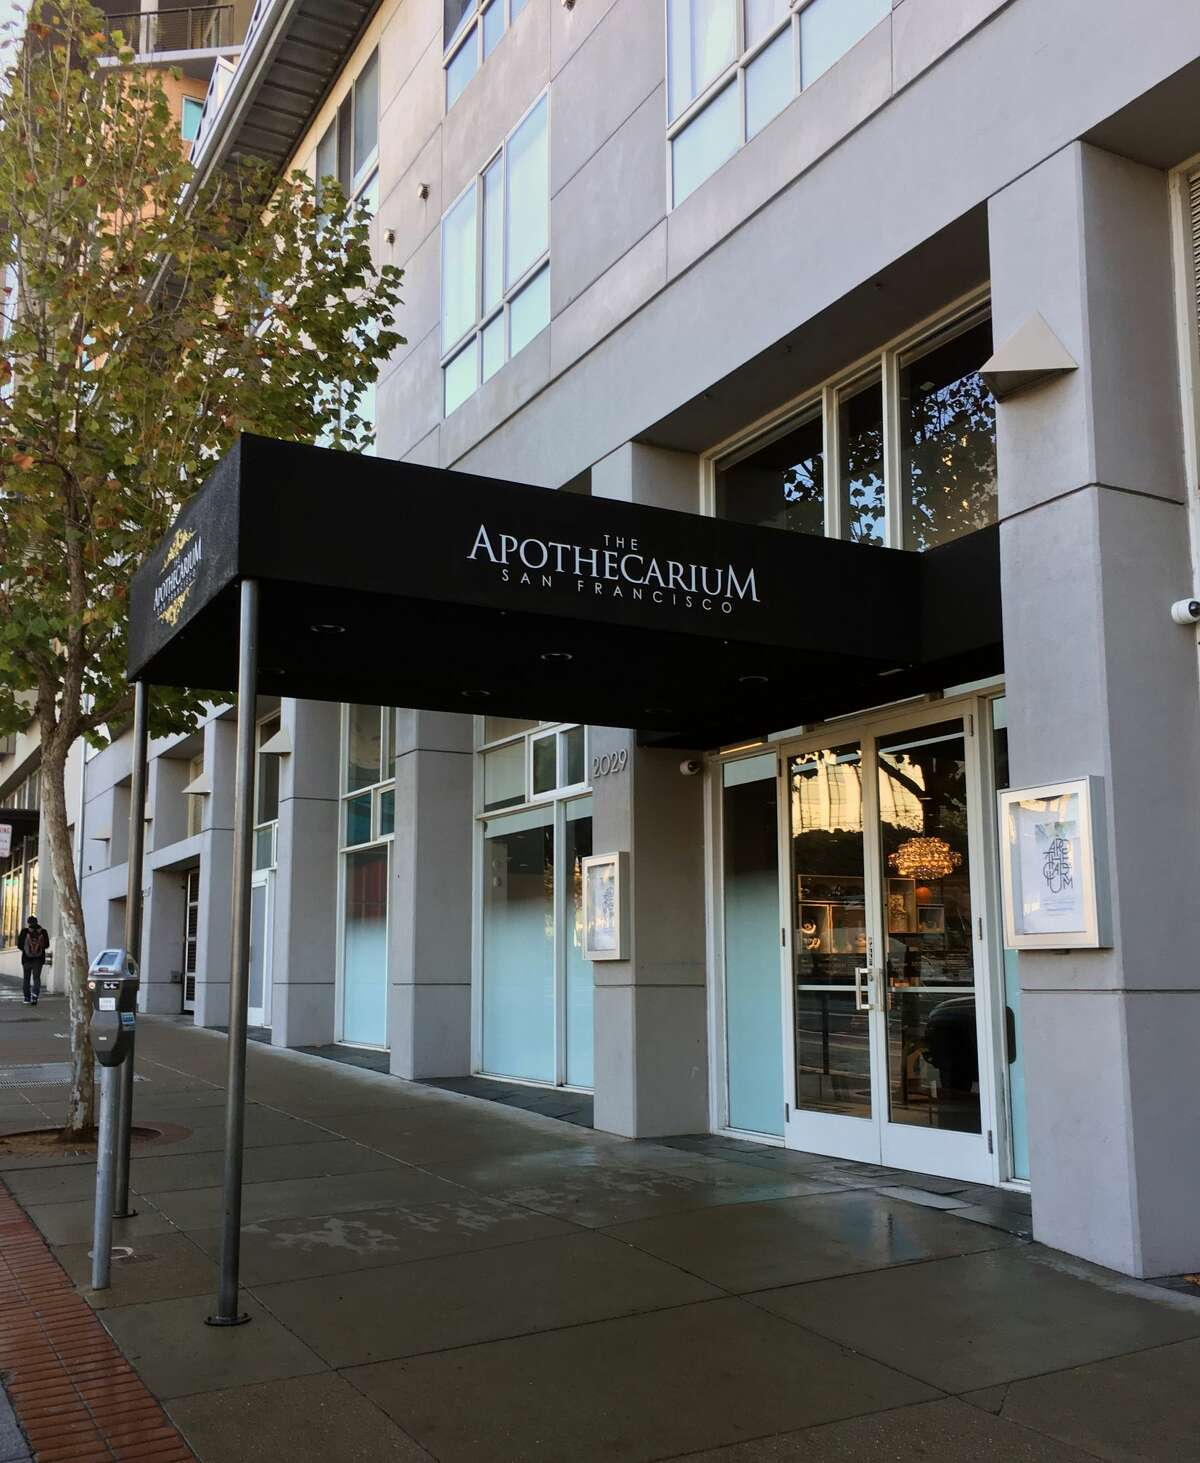 The Apothecarium is a medical cannabis dispensary located in the Castro District of San Francisco, Calif.